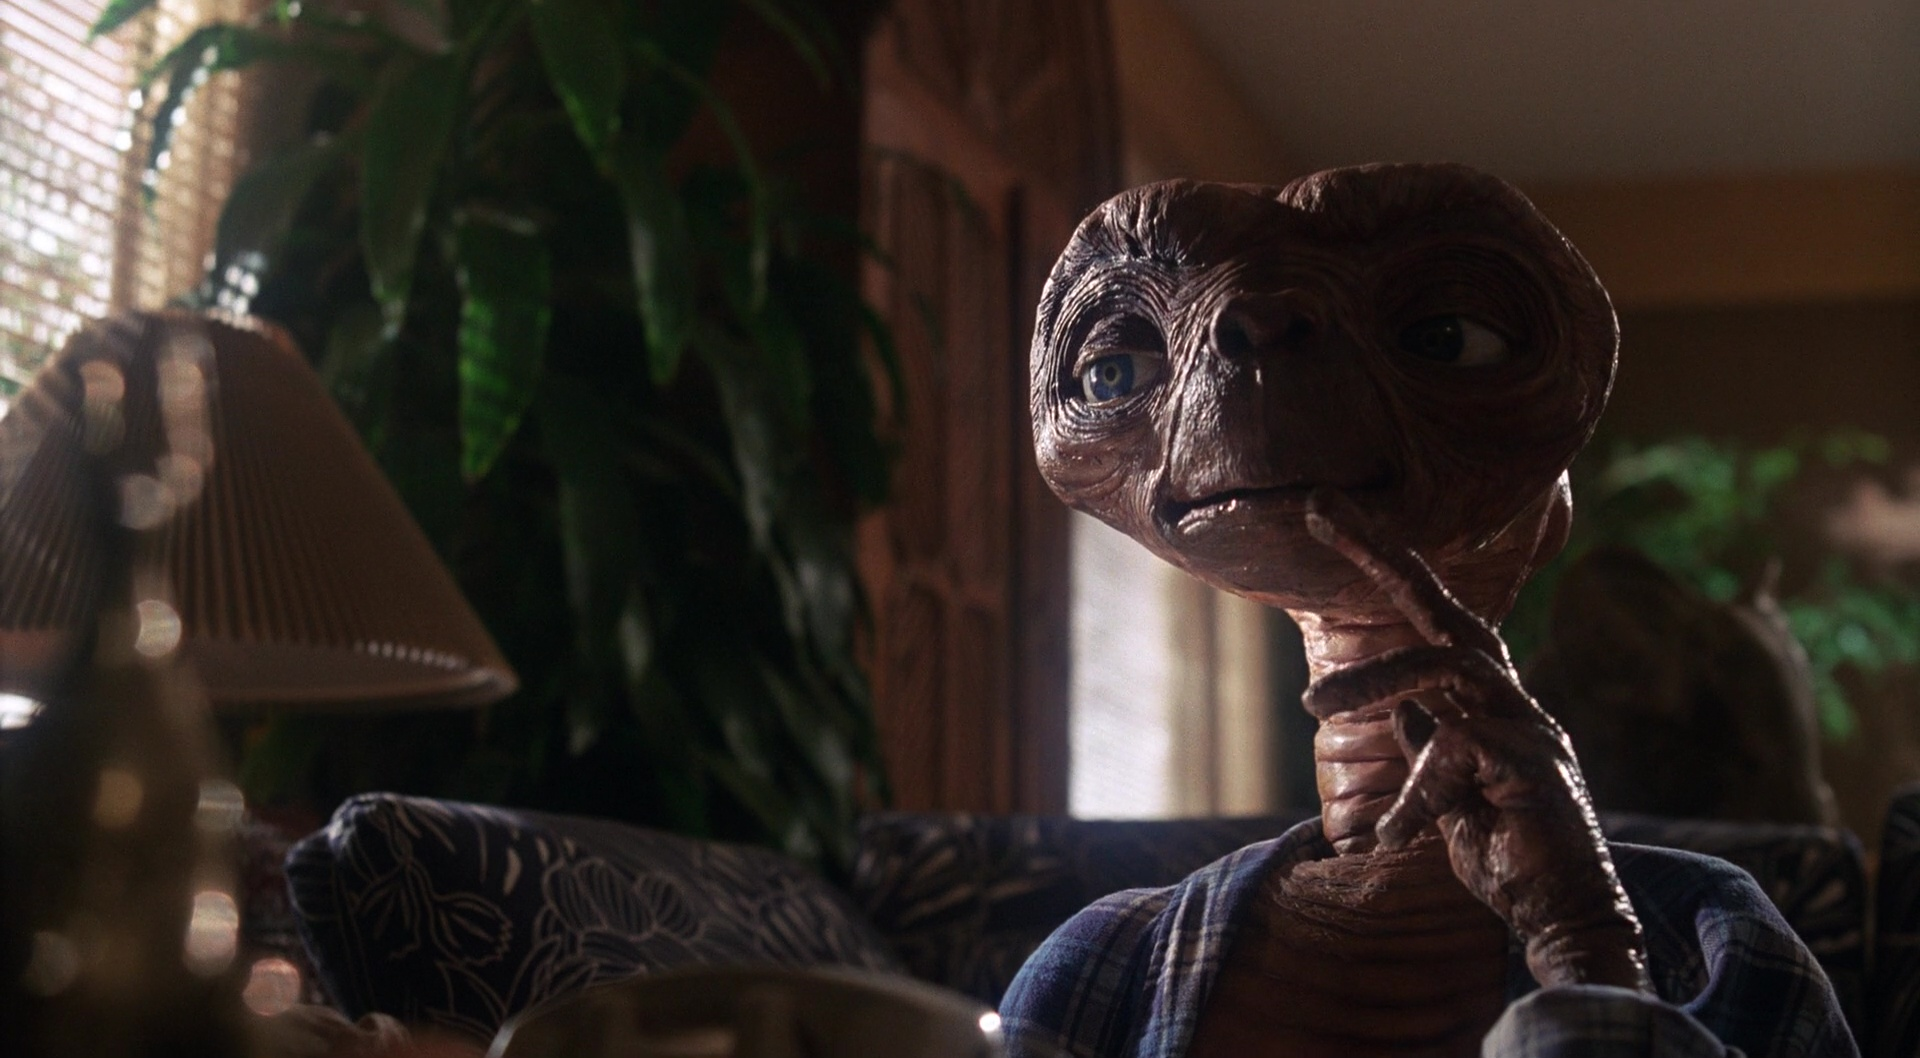 E.T. the Extra-Terrestrial film still 16